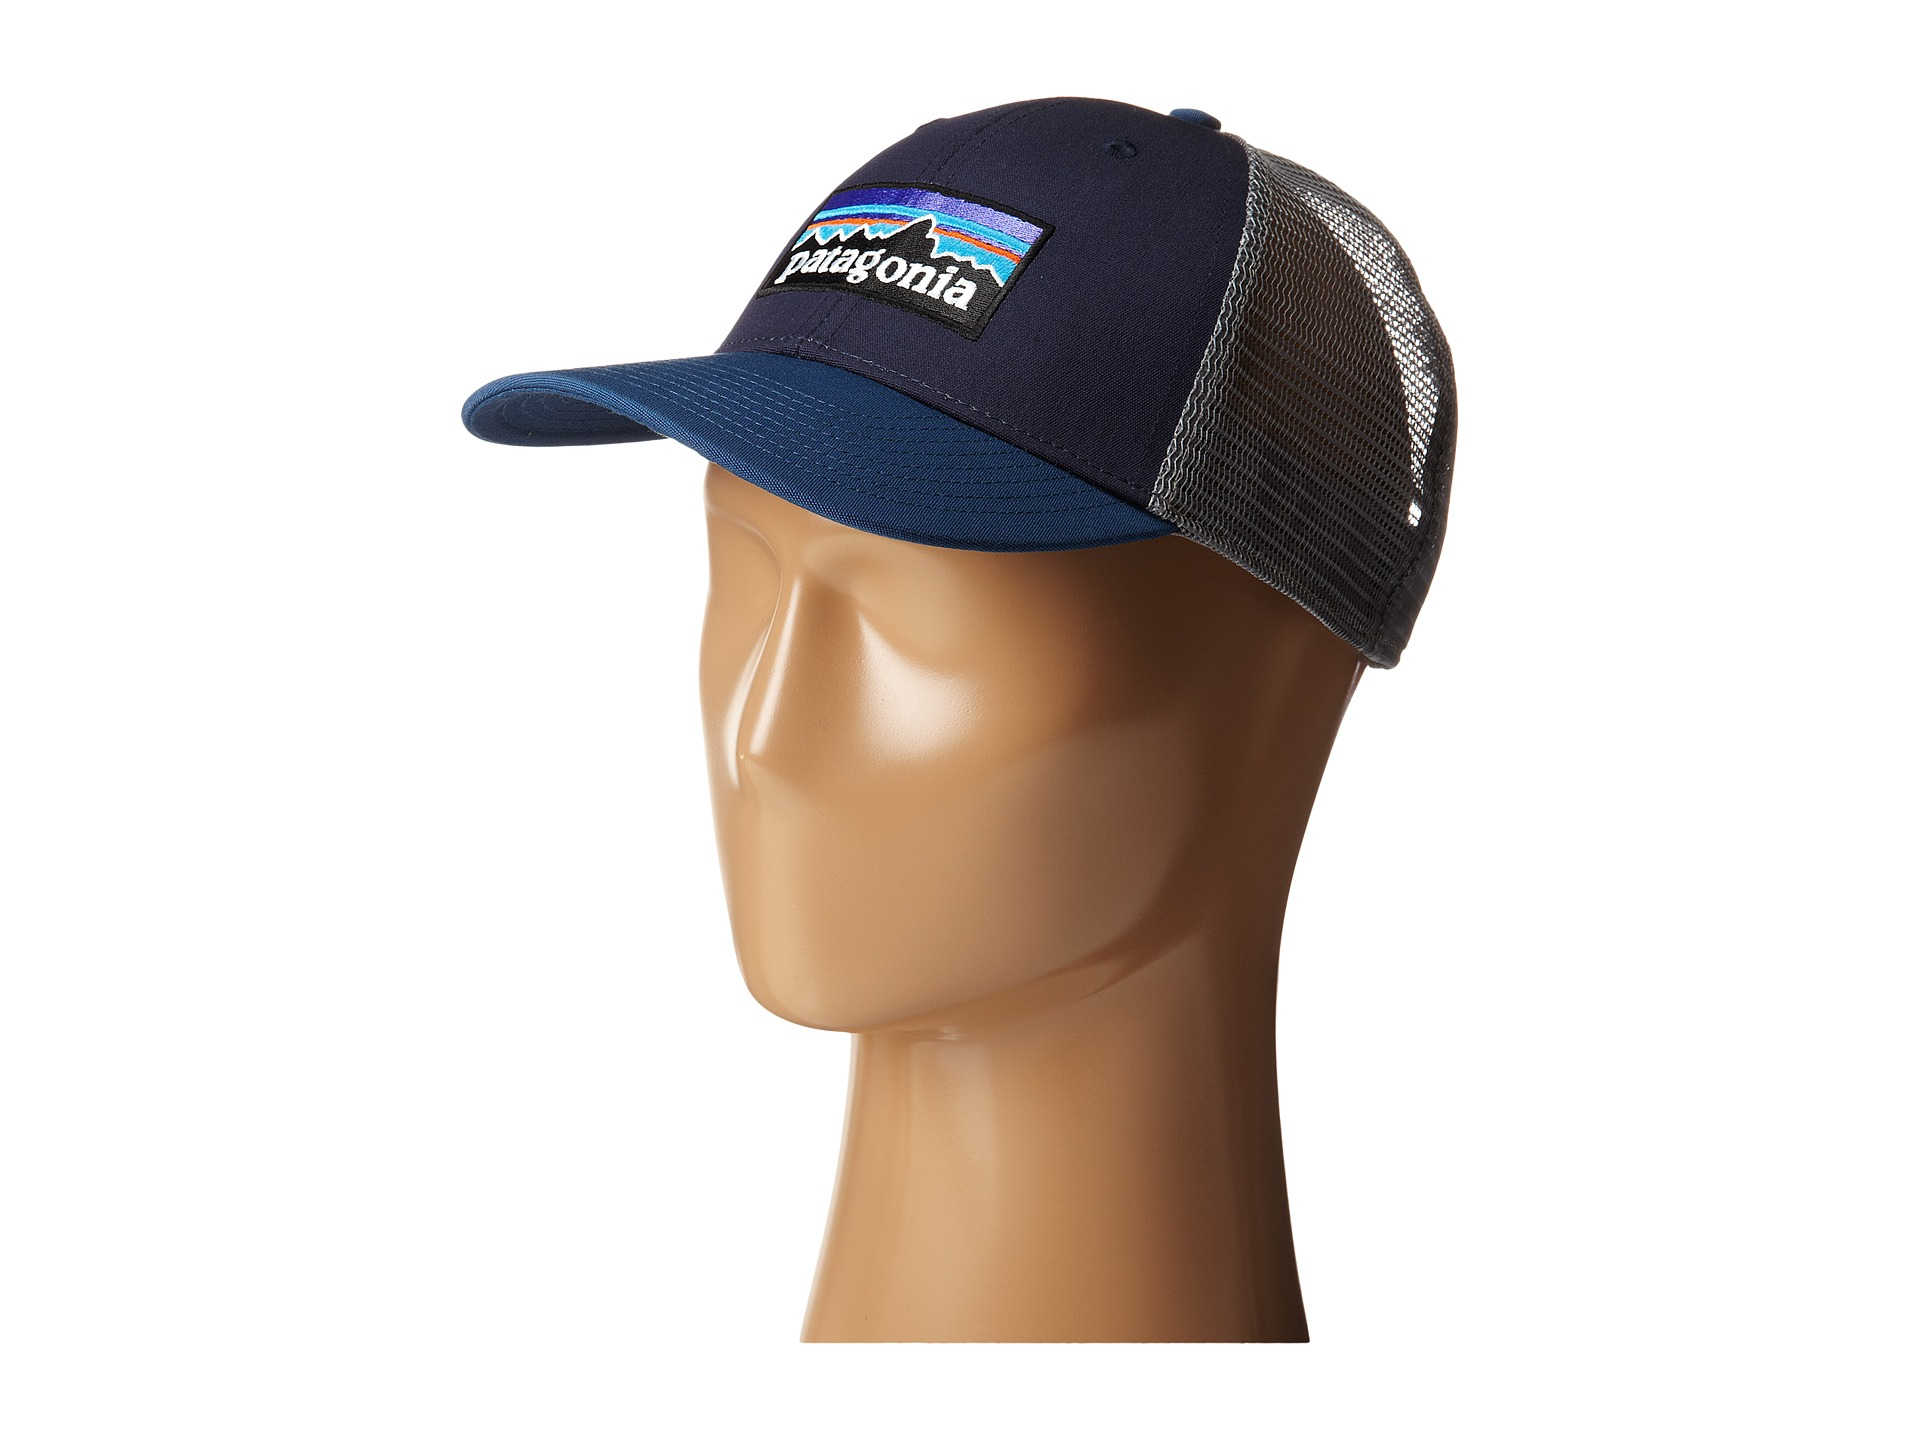 Lyst - Patagonia P6 Lopro Trucker Hat in Blue 17e4f4ac525